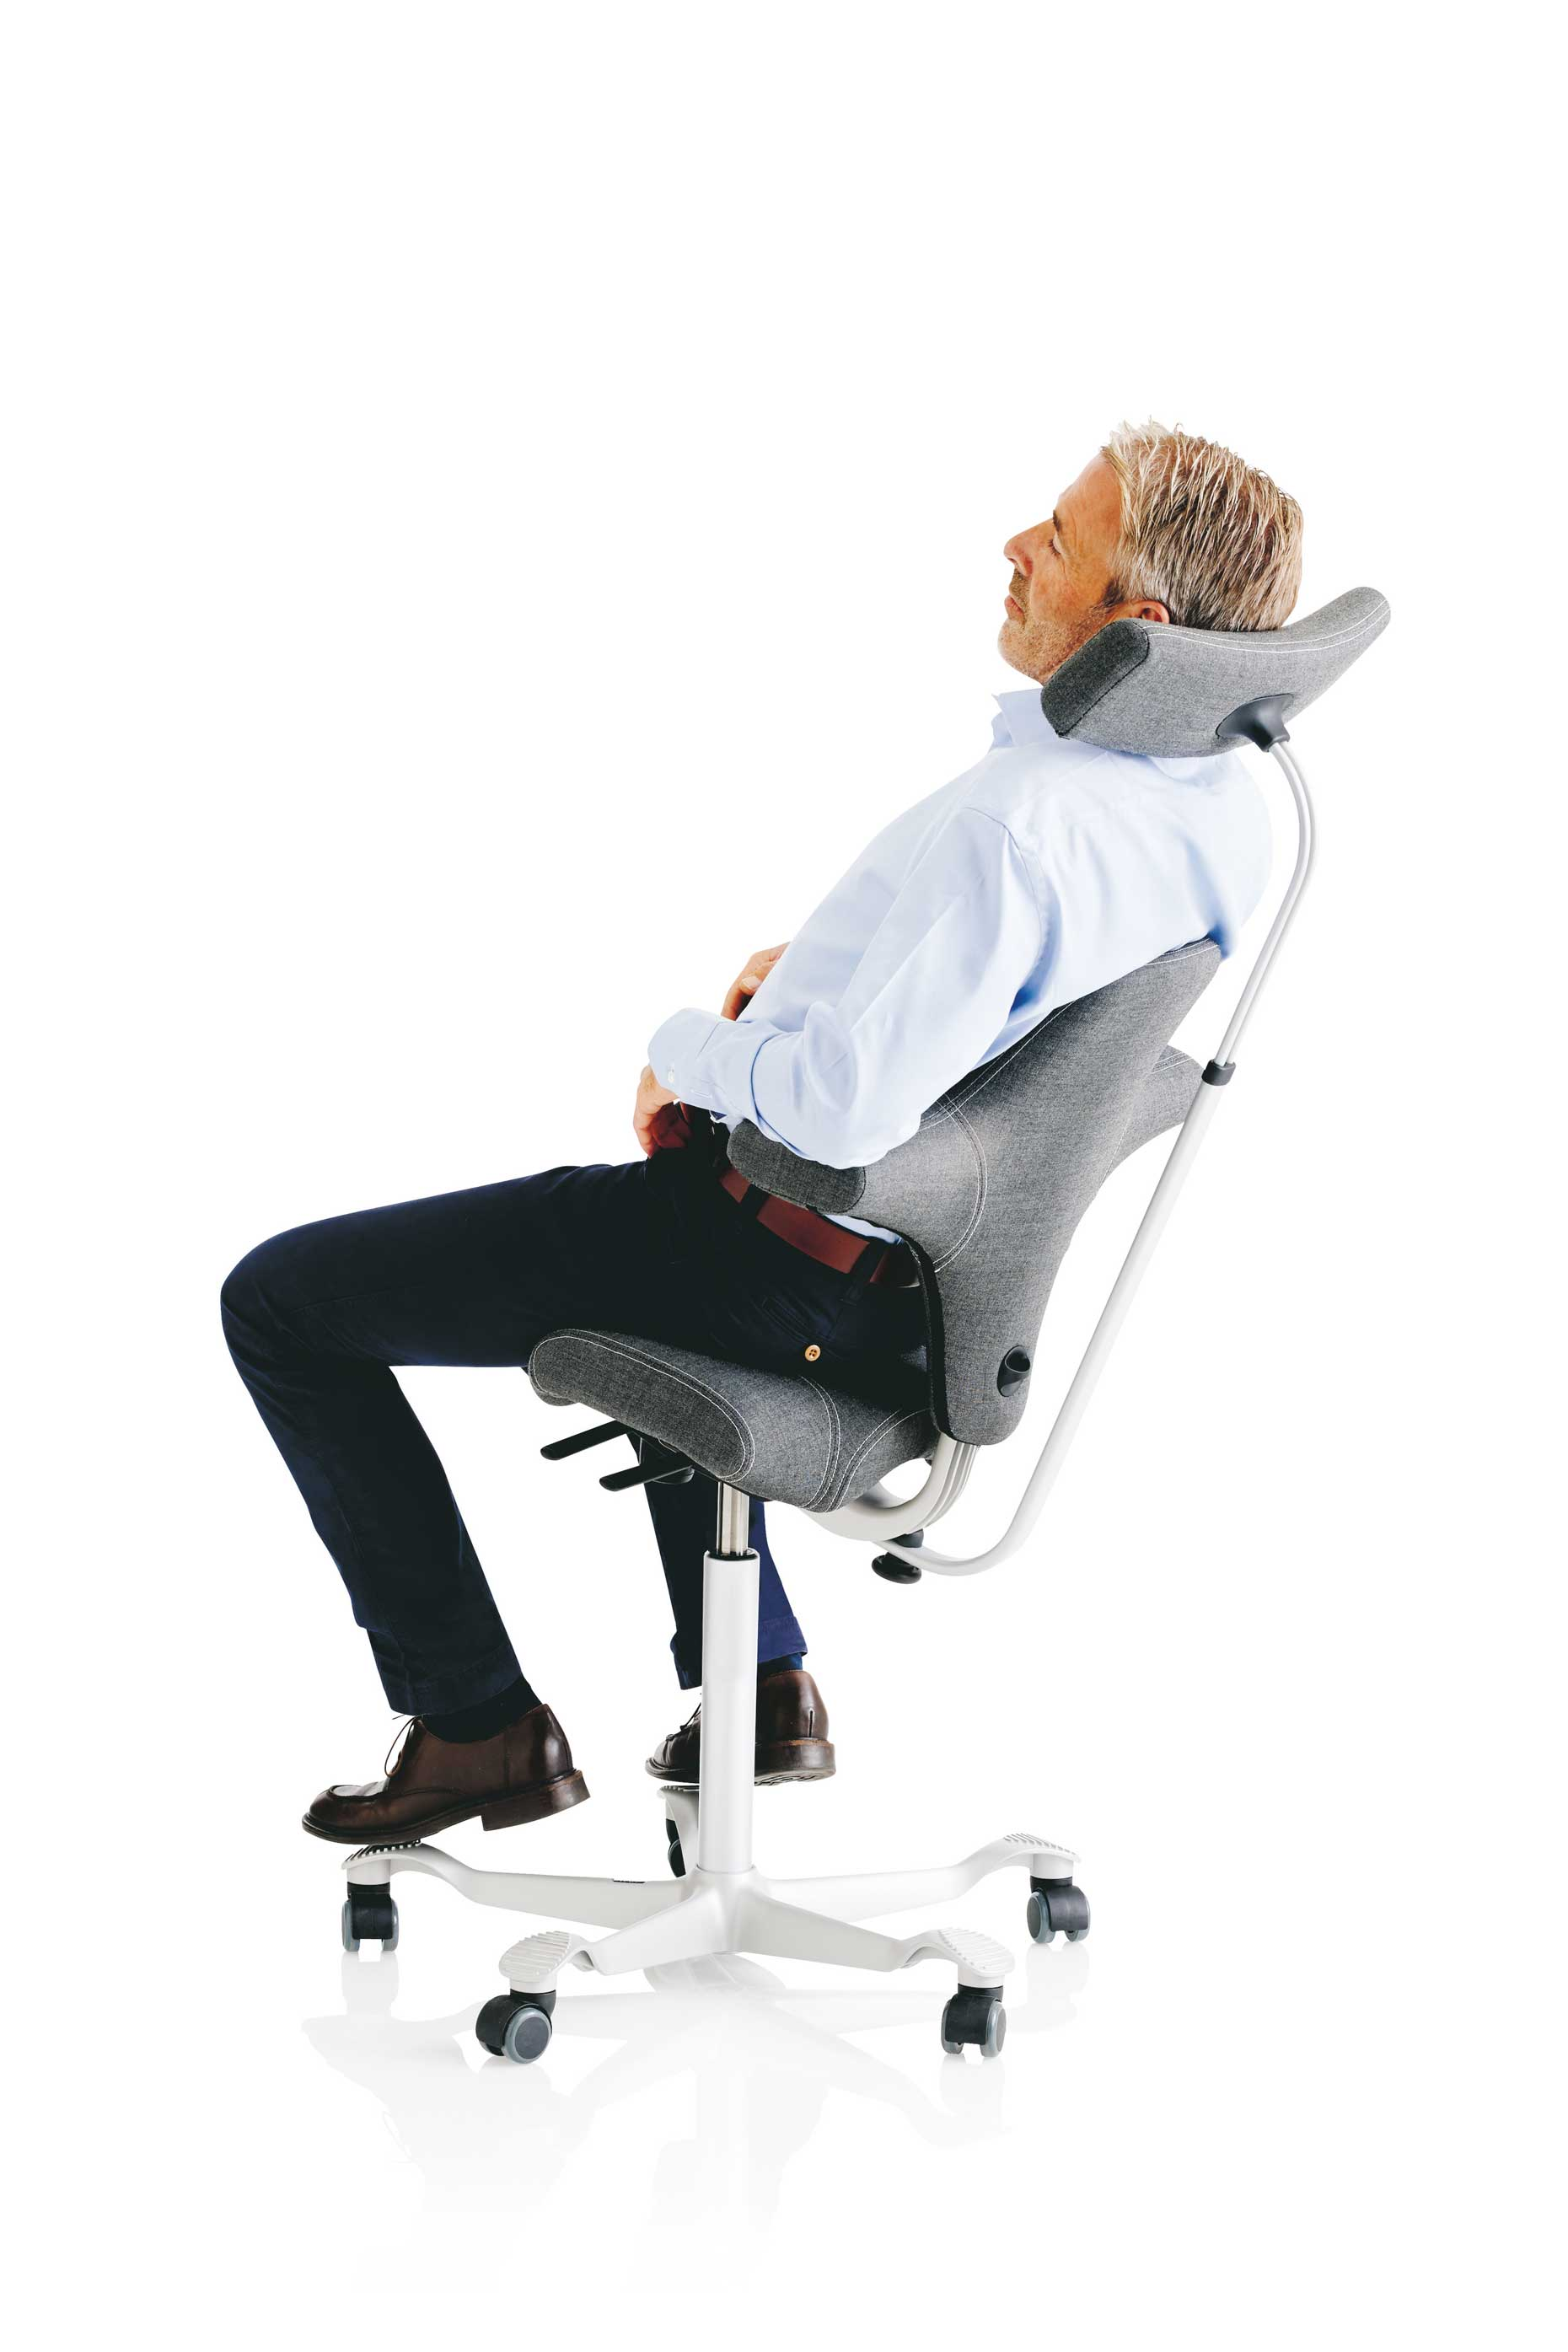 hag posture chair desk for sciatica pain time to break free hÅg capisco and puls task chairs